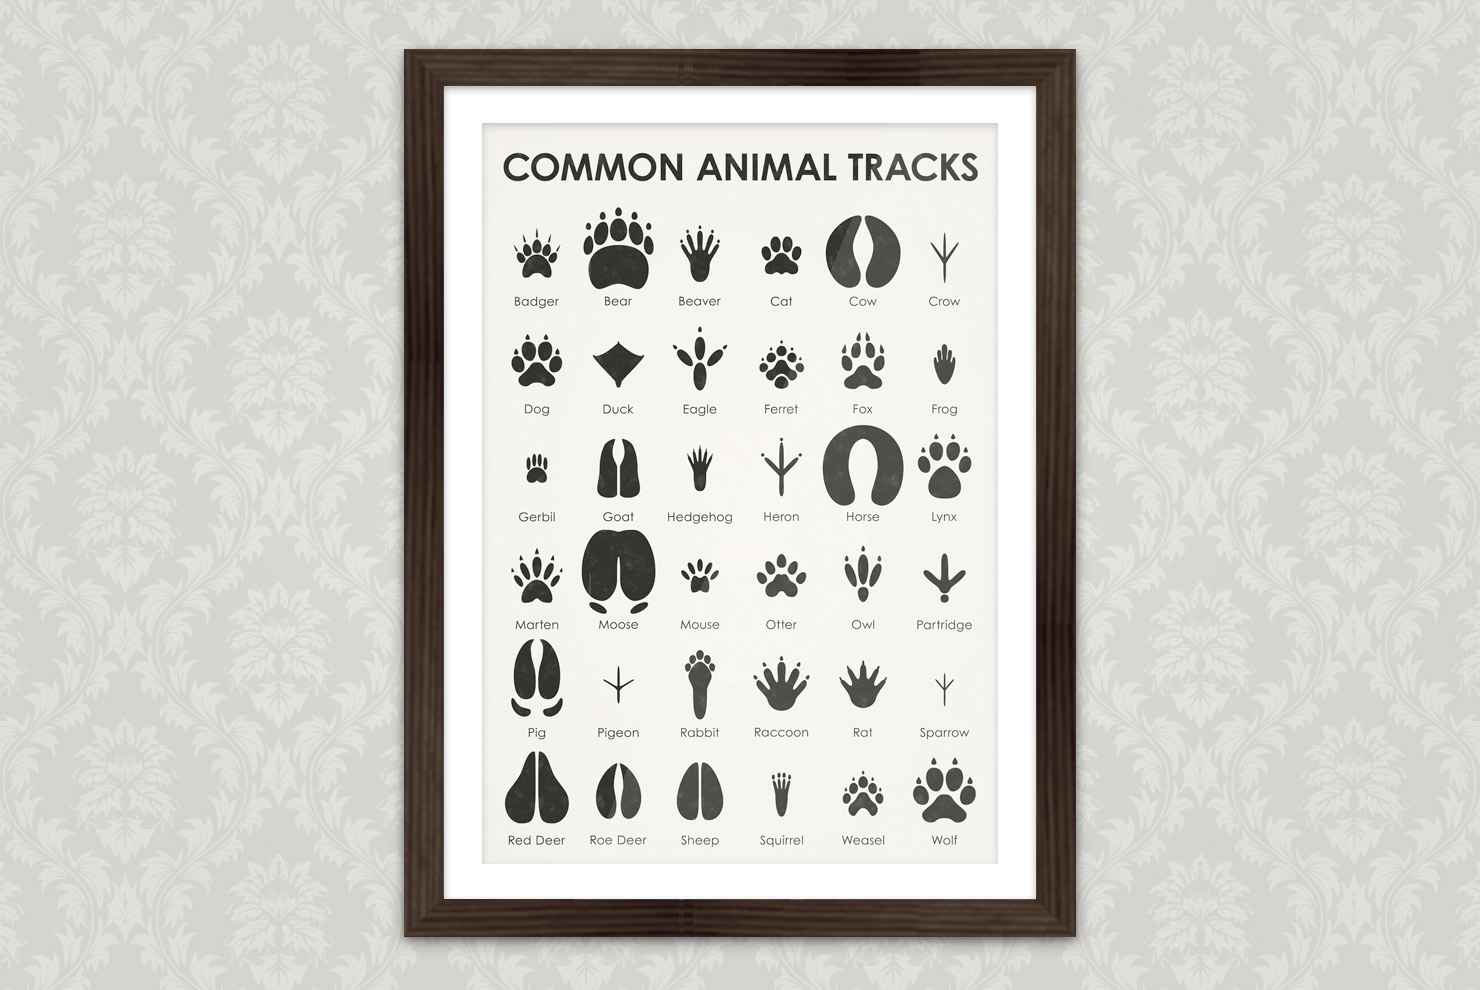 Poster with an infographic as identification sheet for common animal tracks such as badger, bear, beaver, cat, cow, crow, dog, duck, eagle, ferret, fox, frog, gerbil, goat, hedgehog, heron, horse, lynx, marten, moose, mouse, otter, owl, partridge, pig, pigeon, rabbit, raccoon, rat, sparrow, red deer, roe deer, sheep, squirrel, weasel, wolf